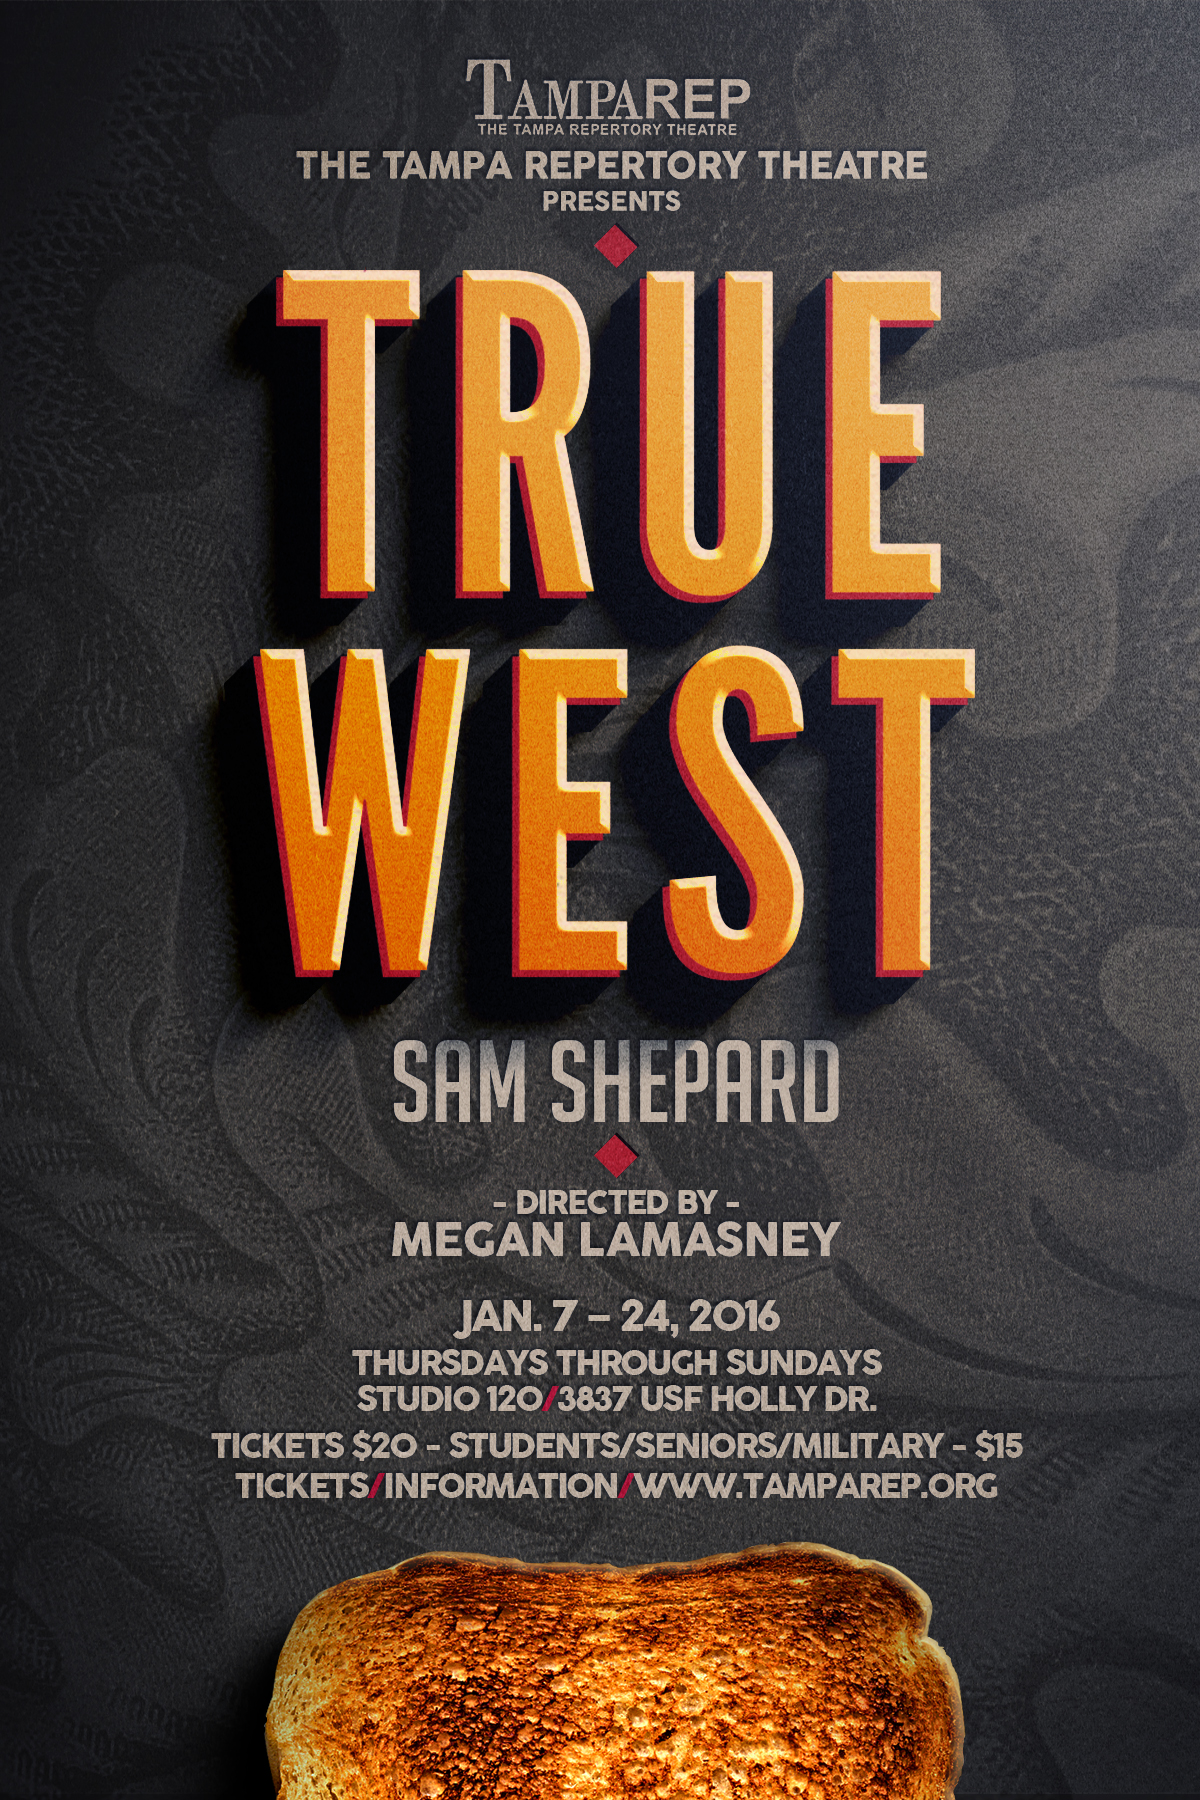 the conflict between austin and lee in true west by sam shepard Sam shepard's true west siblings essays - the brothers lee and austin in sam shepard's american siblings true west is an the conflict between.